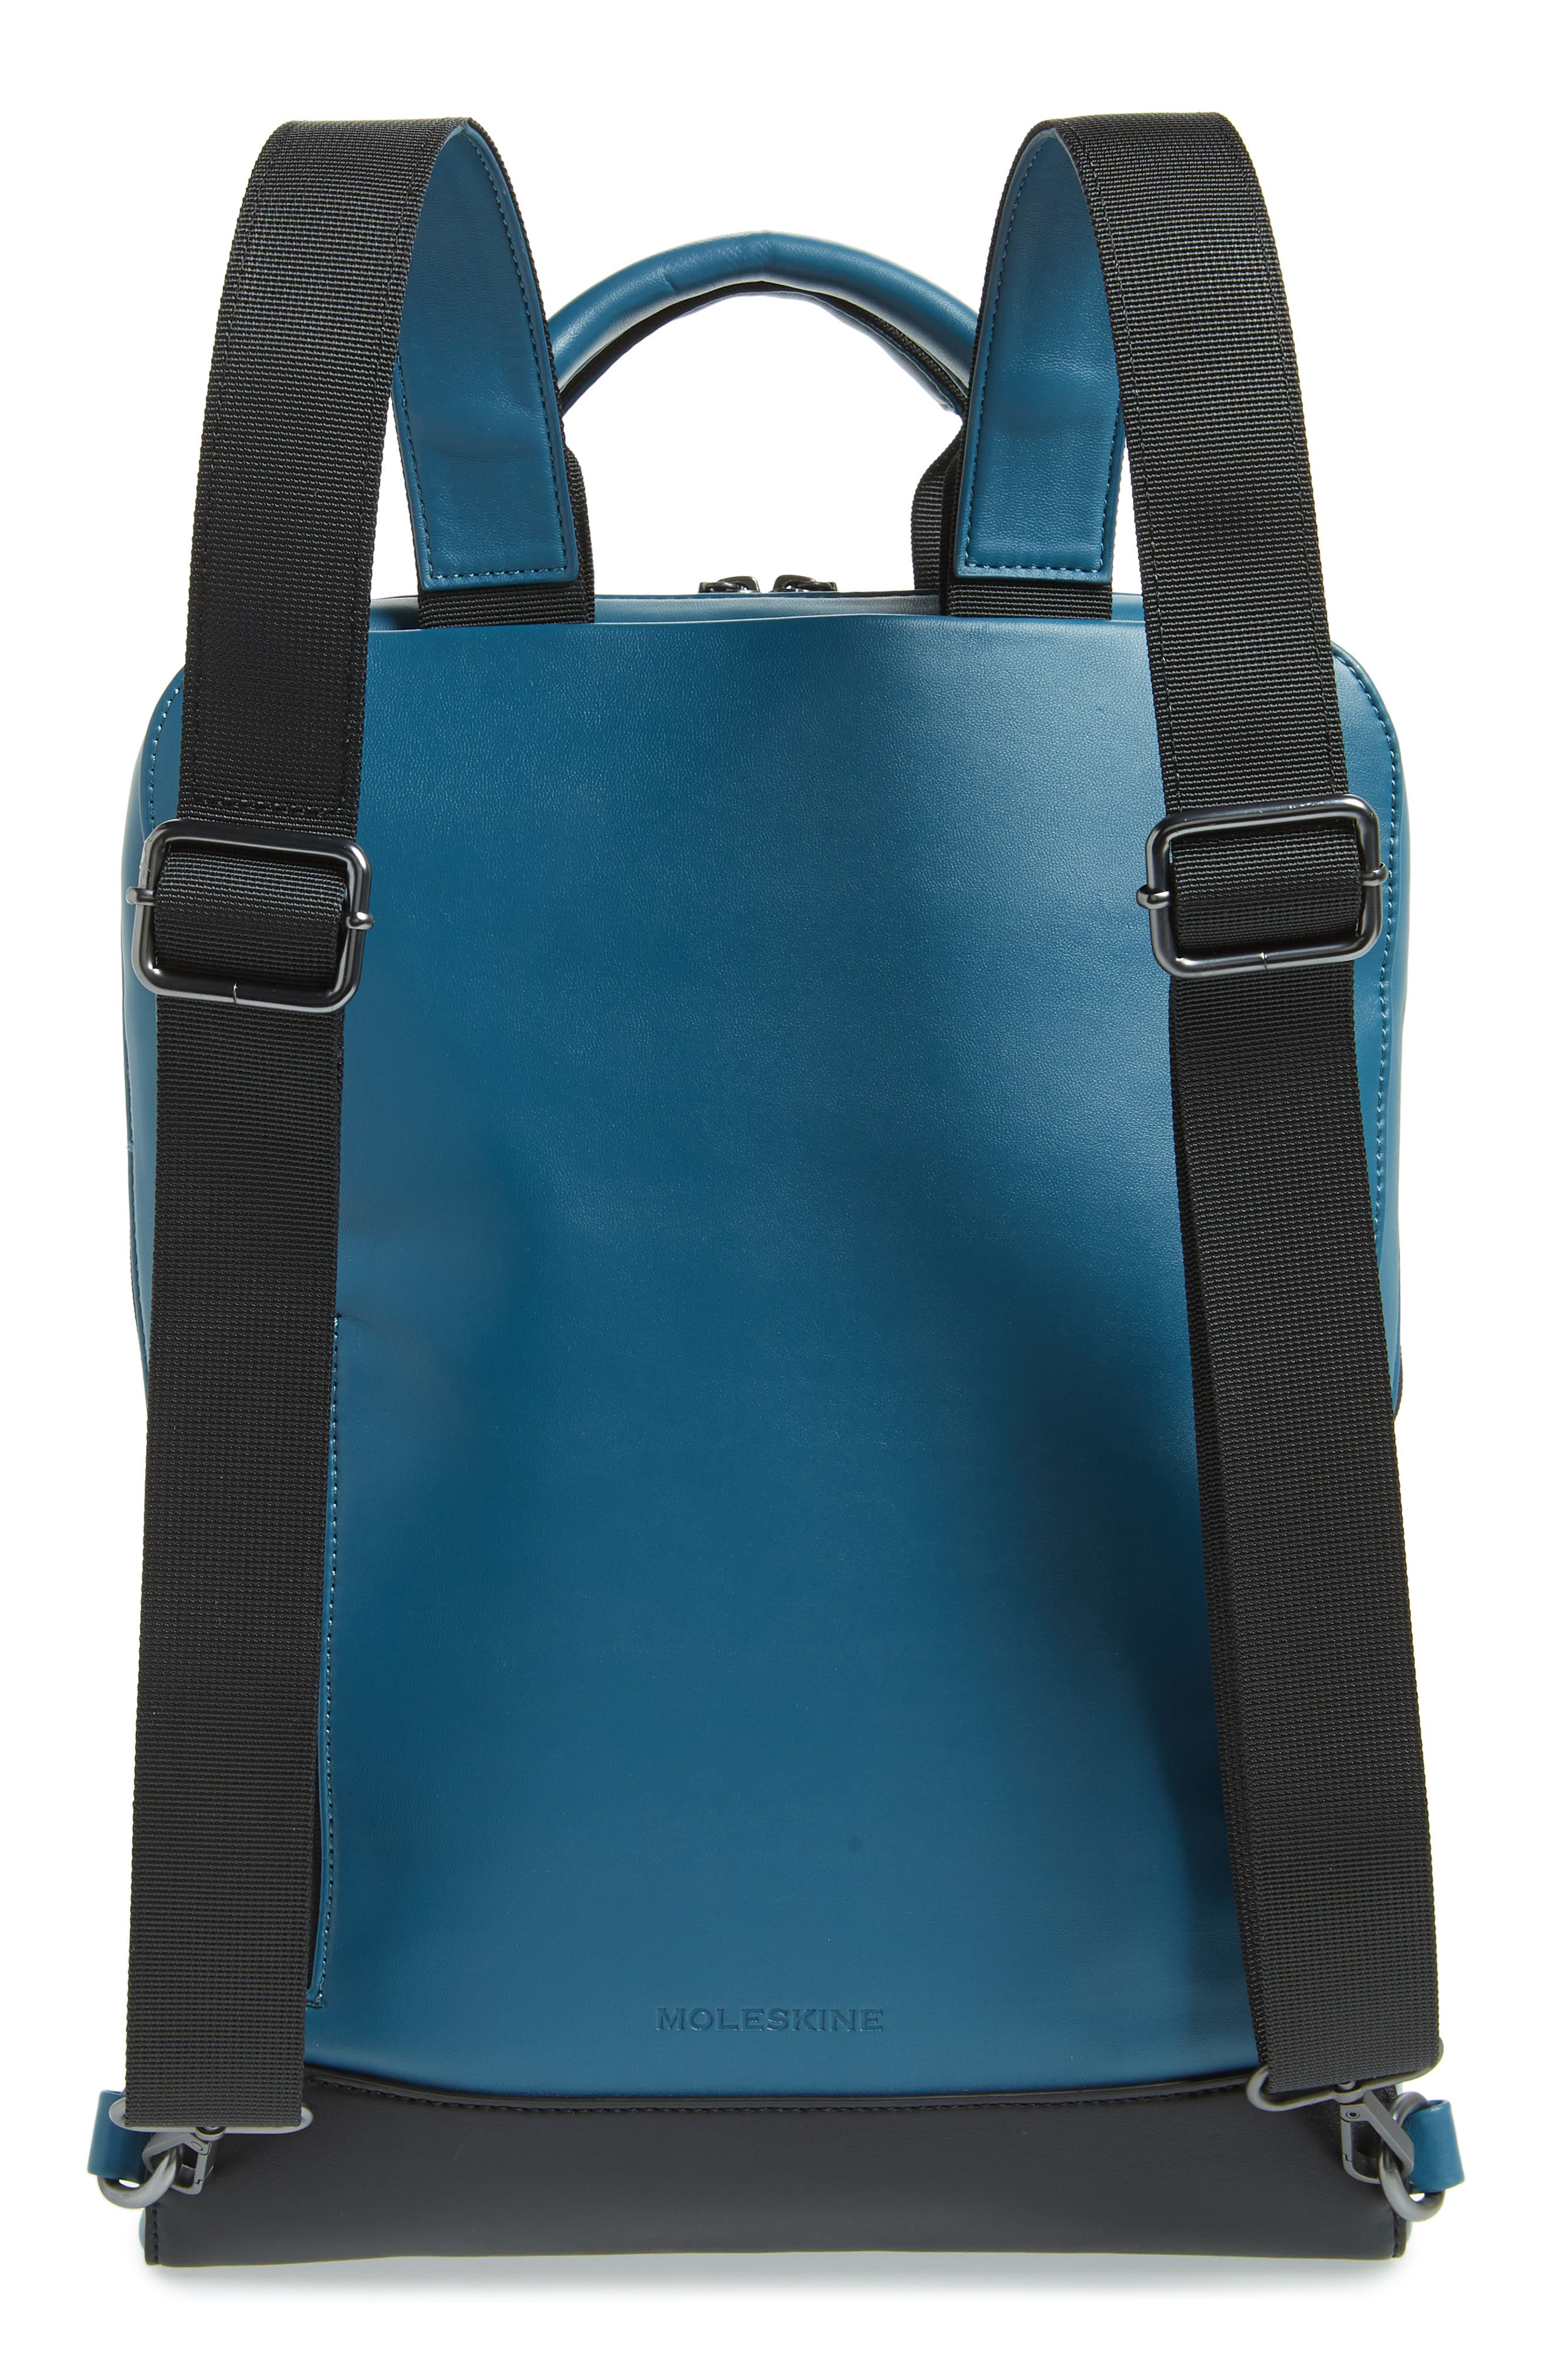 ID Vertical Device Bag,                             Alternate thumbnail 3, color,                             460